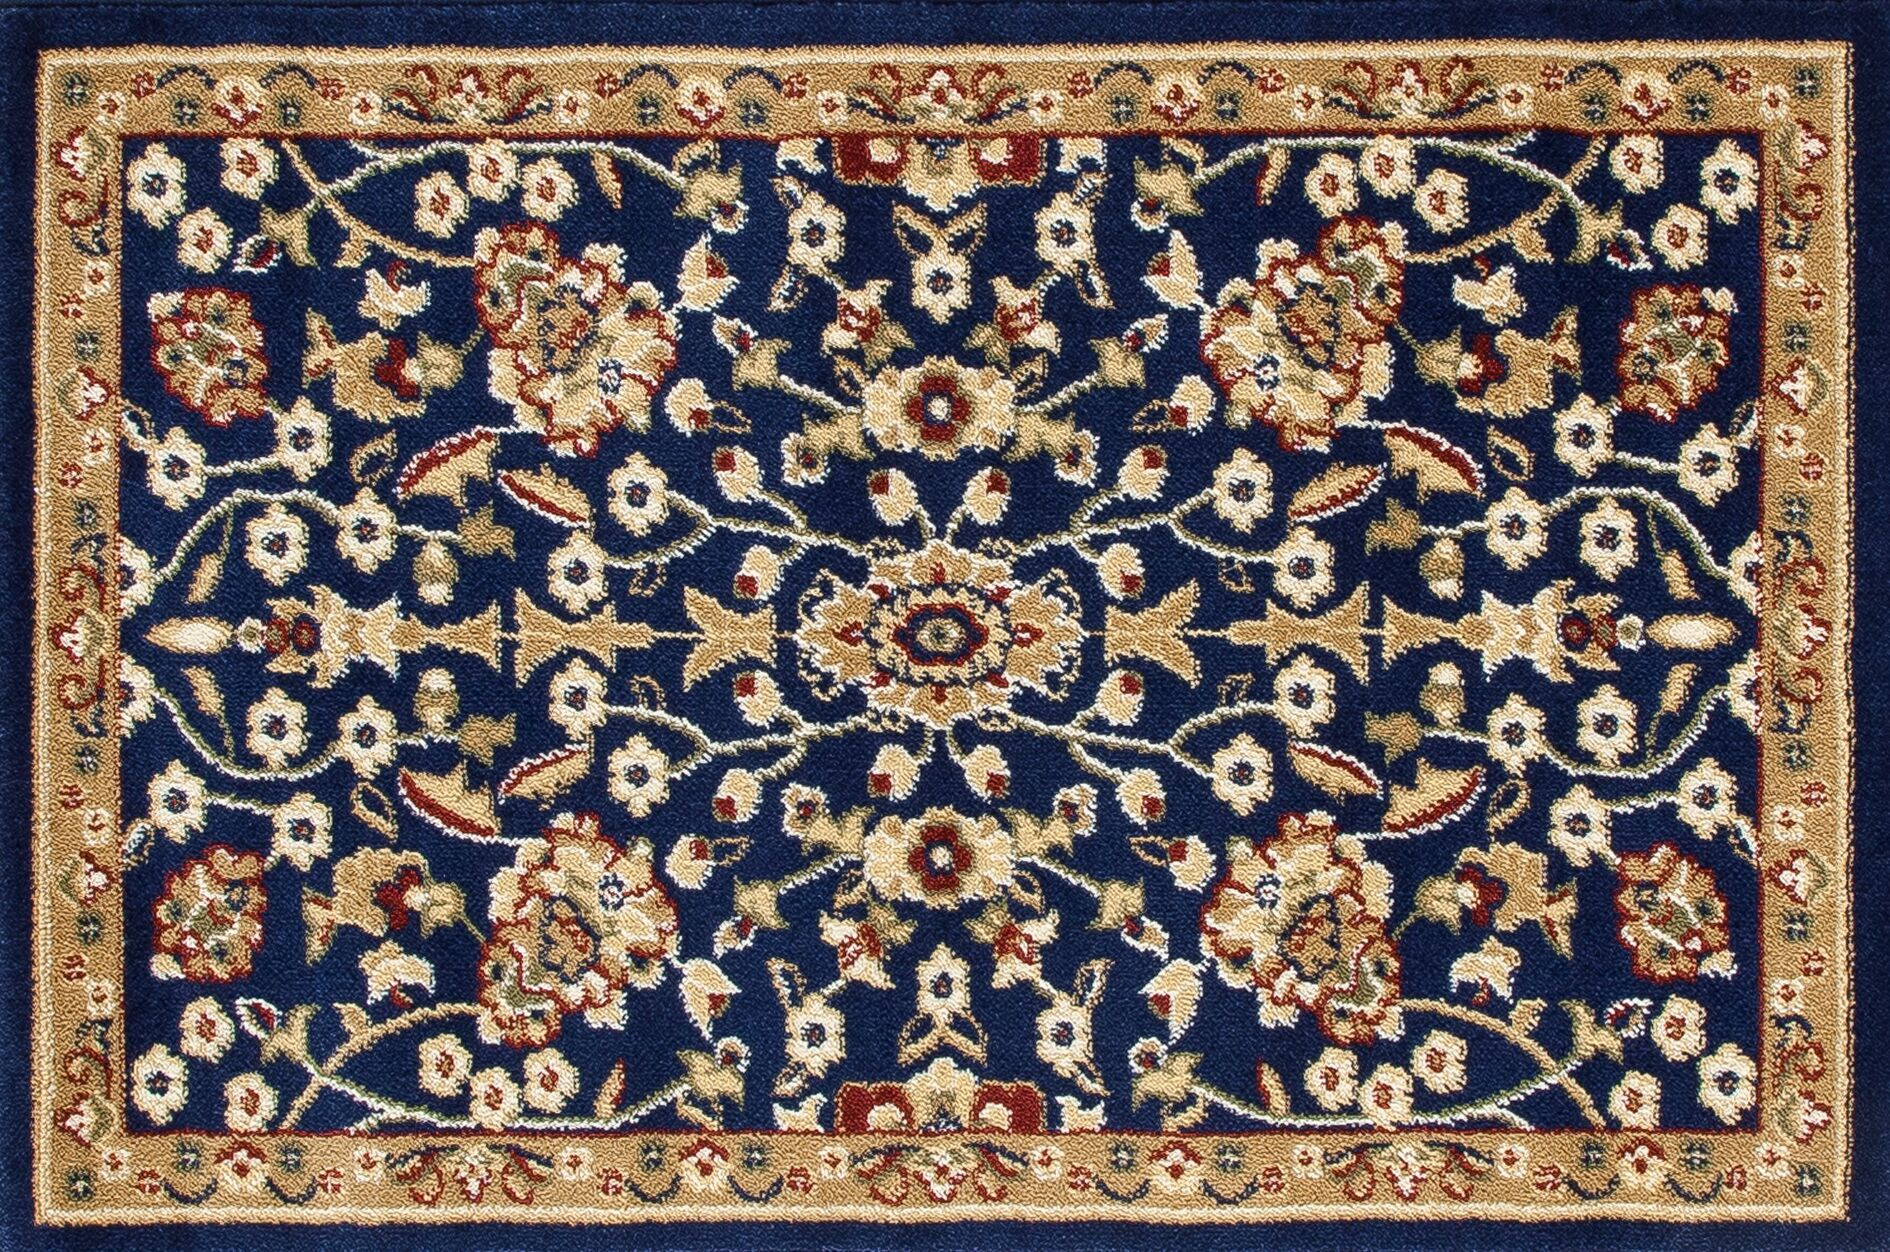 Willard Navy/Beige Area Rug Rug Size: Rectangle 2.7' x 4.1'